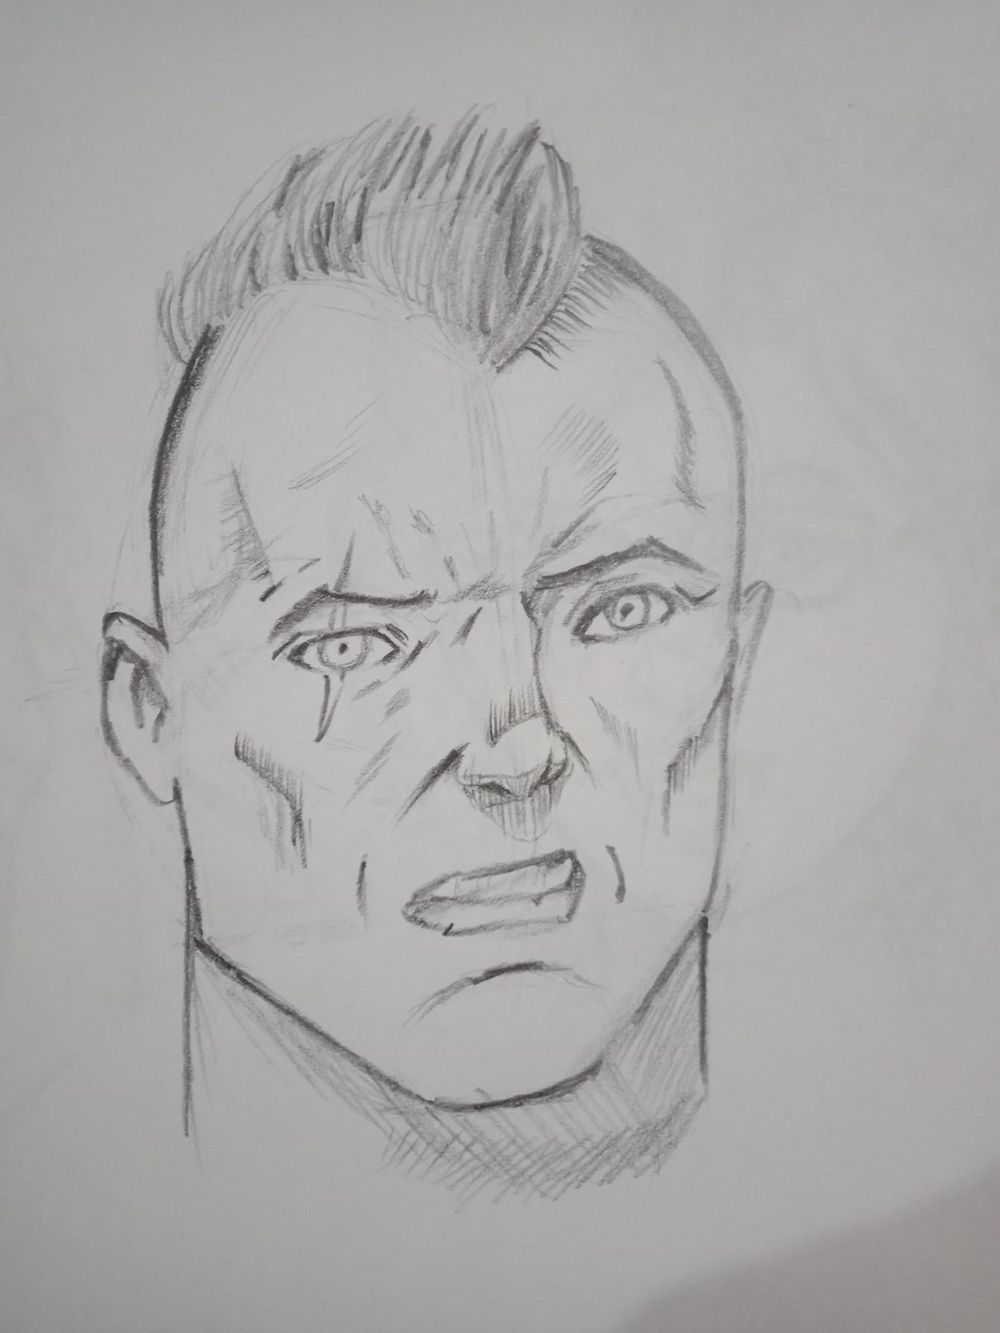 comic faces - image 2 - student project